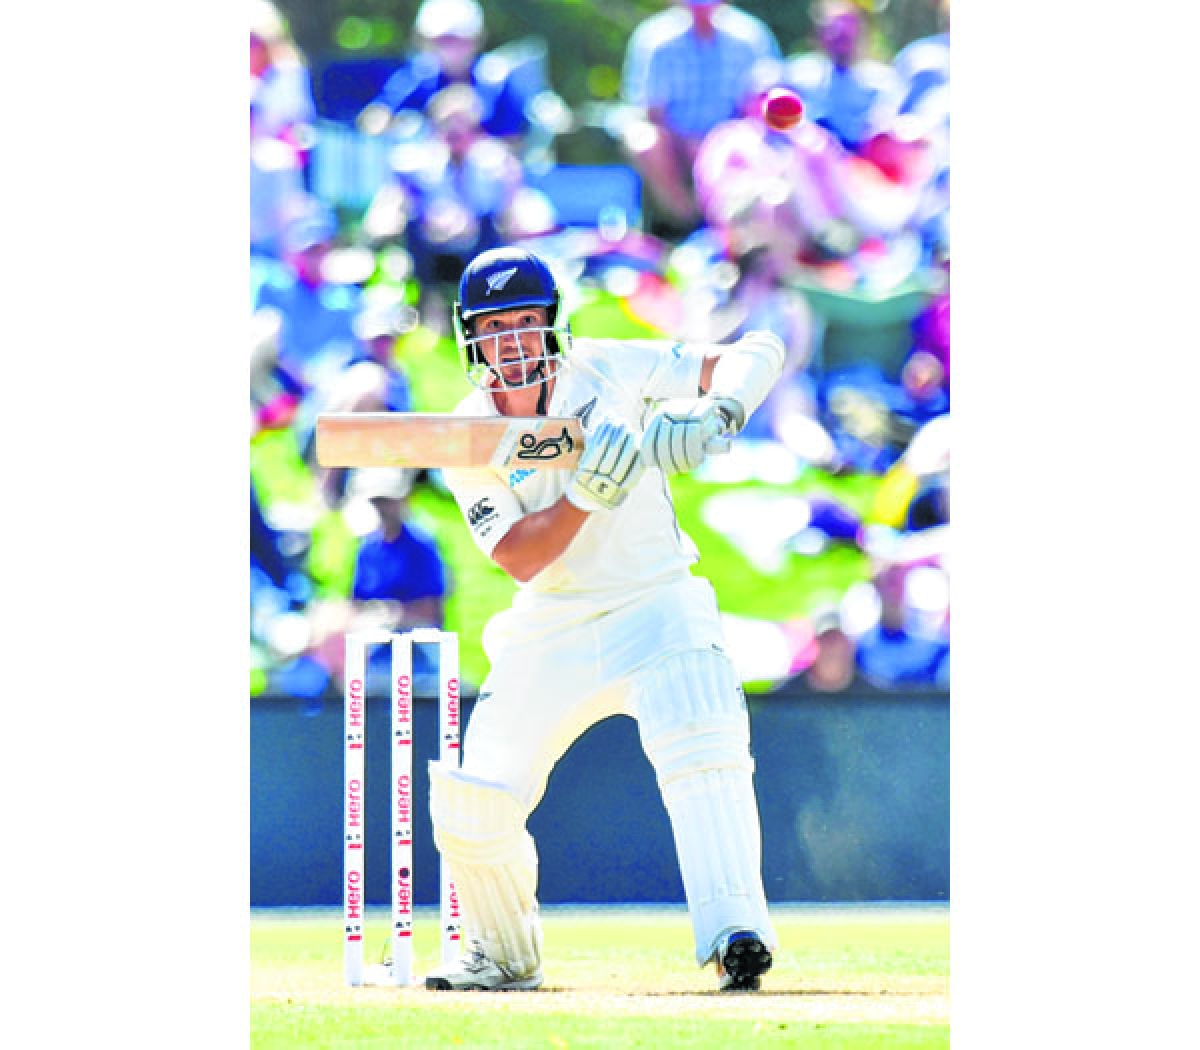 New Zealand's BJ Watling bats during day two of the second cricket Test match between New Zealand and England at Hagley Oval in Christchurch on March 31, 2018. / AFP PHOTO / Marty MELVILLE